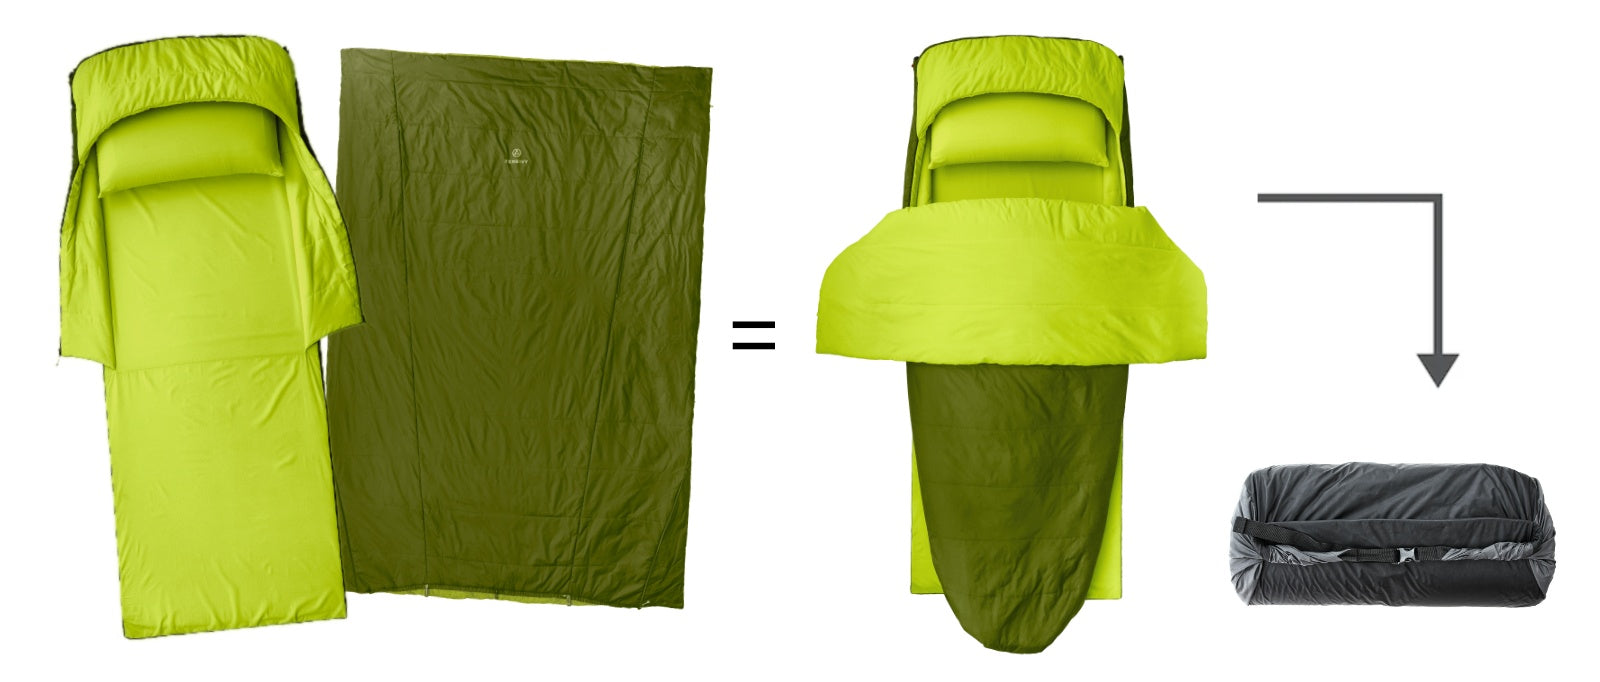 The Zenbivy MotoBed™ is a complete bed system optimized for car camping.  It includes everything you need (except your favorite pillow from home) to camp in luxury, no matter where you go.